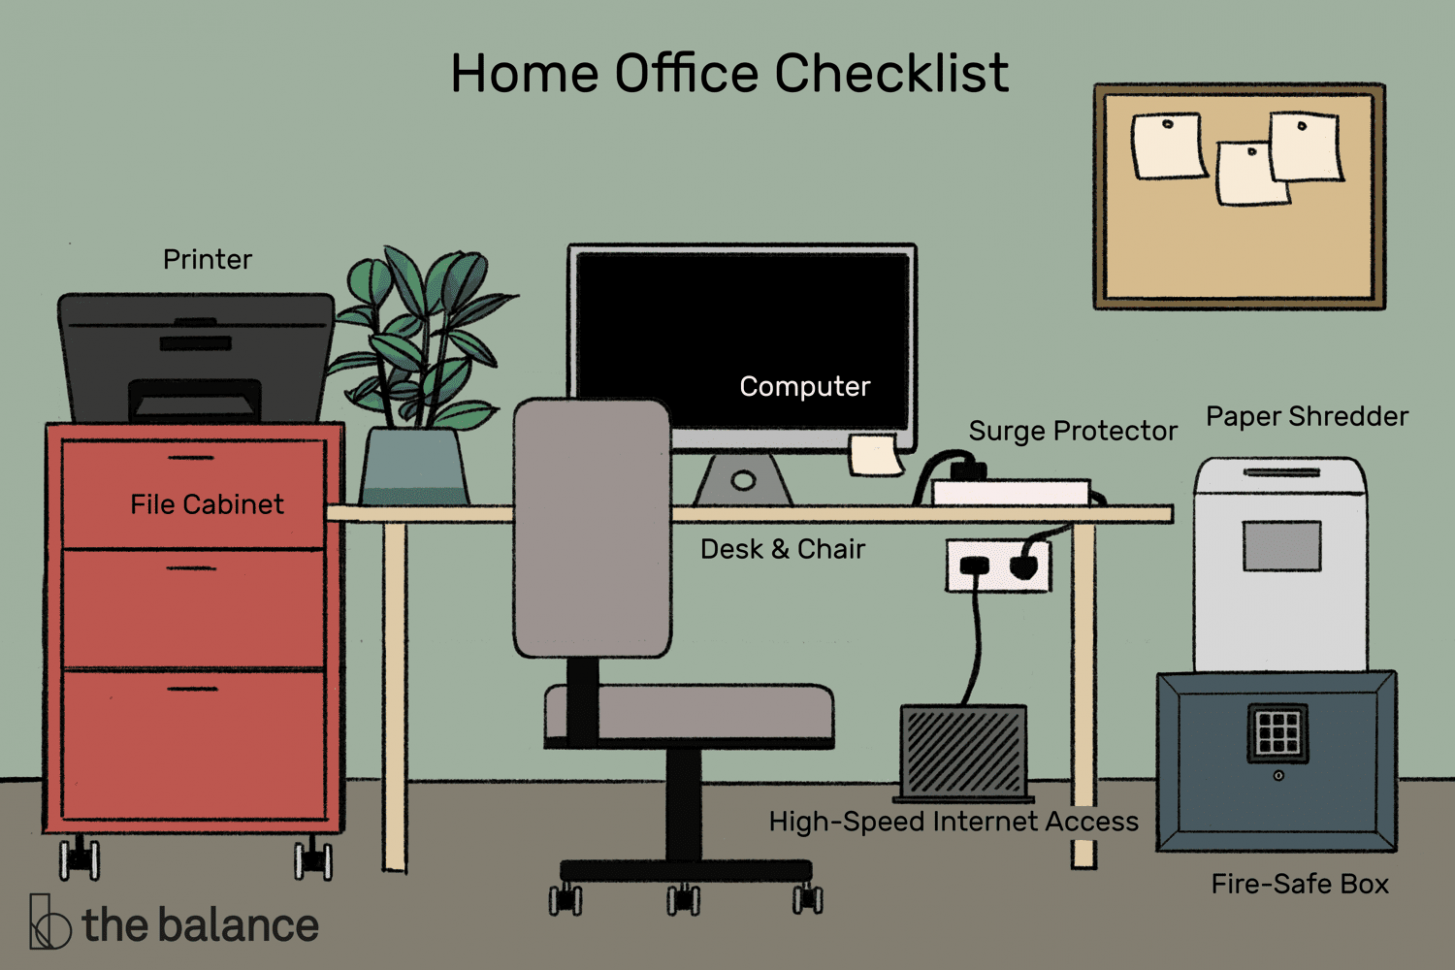 11 Items You Need to Set up an Efficient Home Office - home office ideas for writers